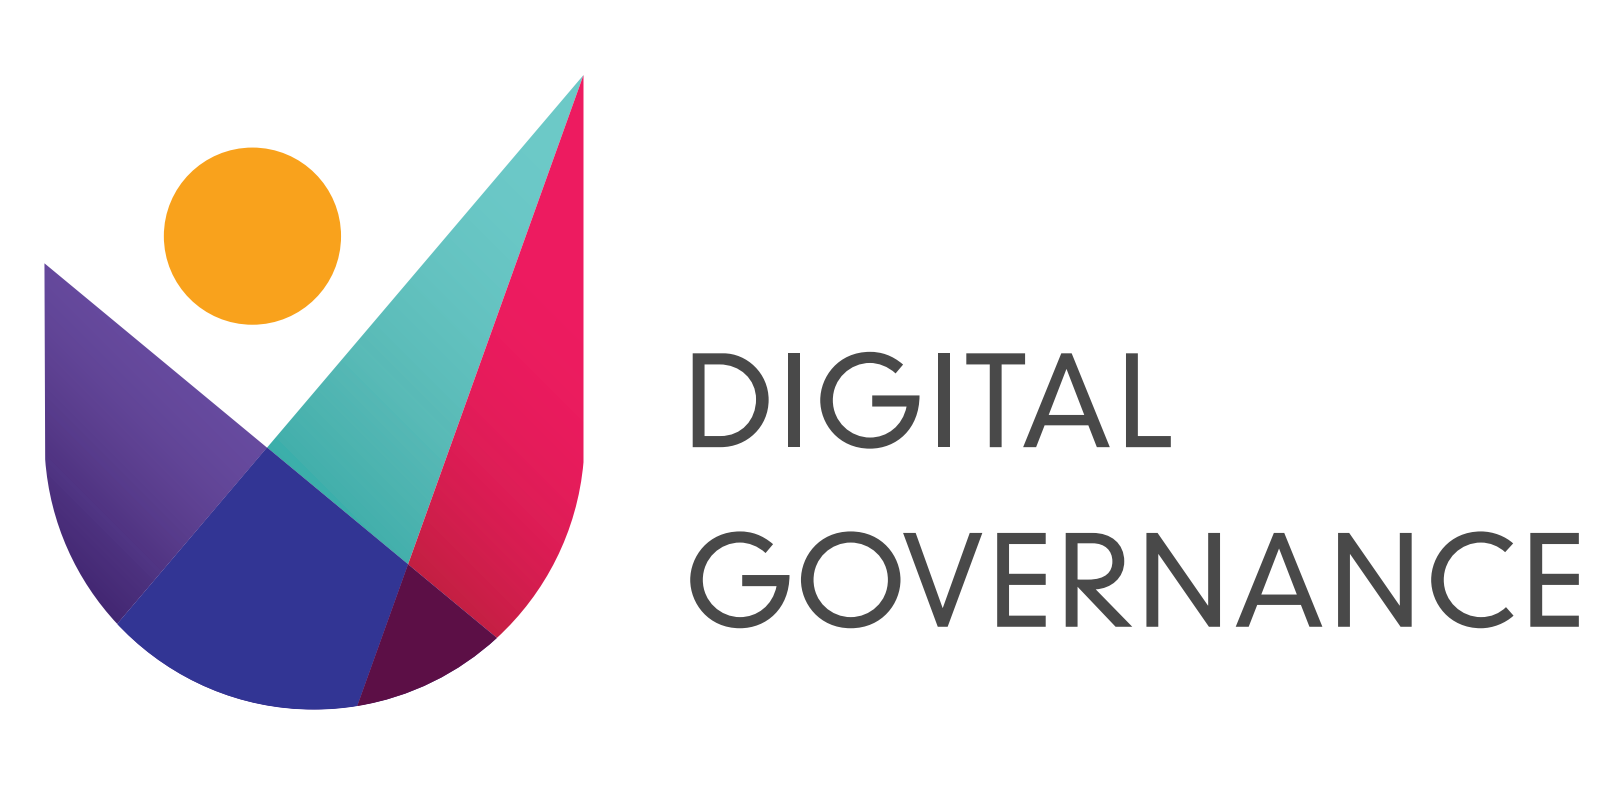 Welcome To Digital Governance!